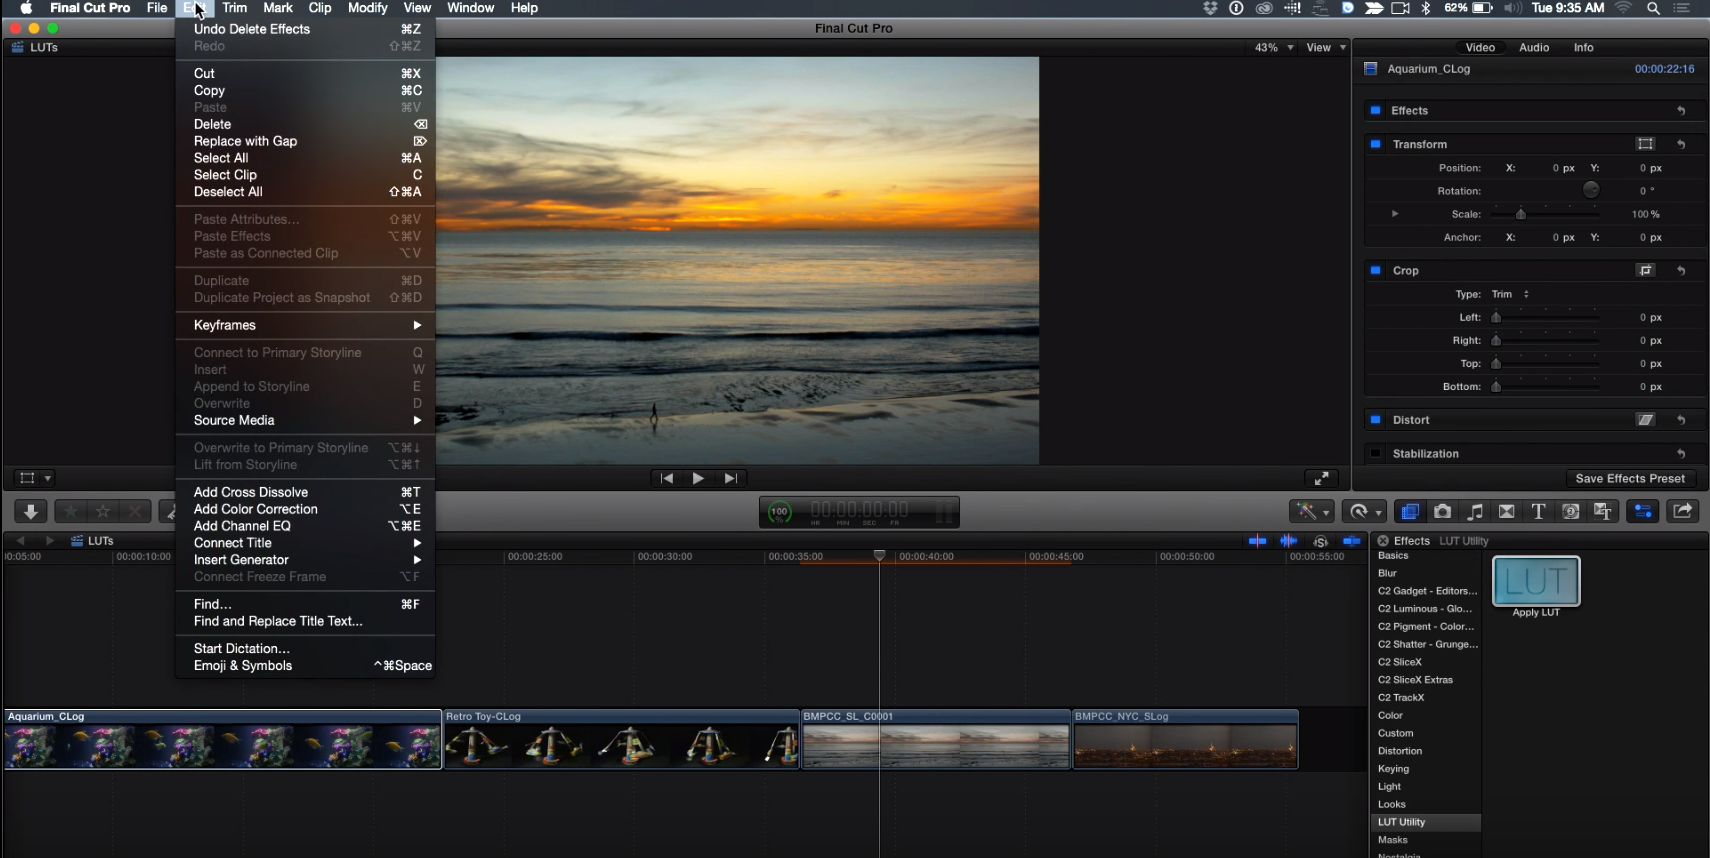 One step LUTs in Final Cut Pro X 8